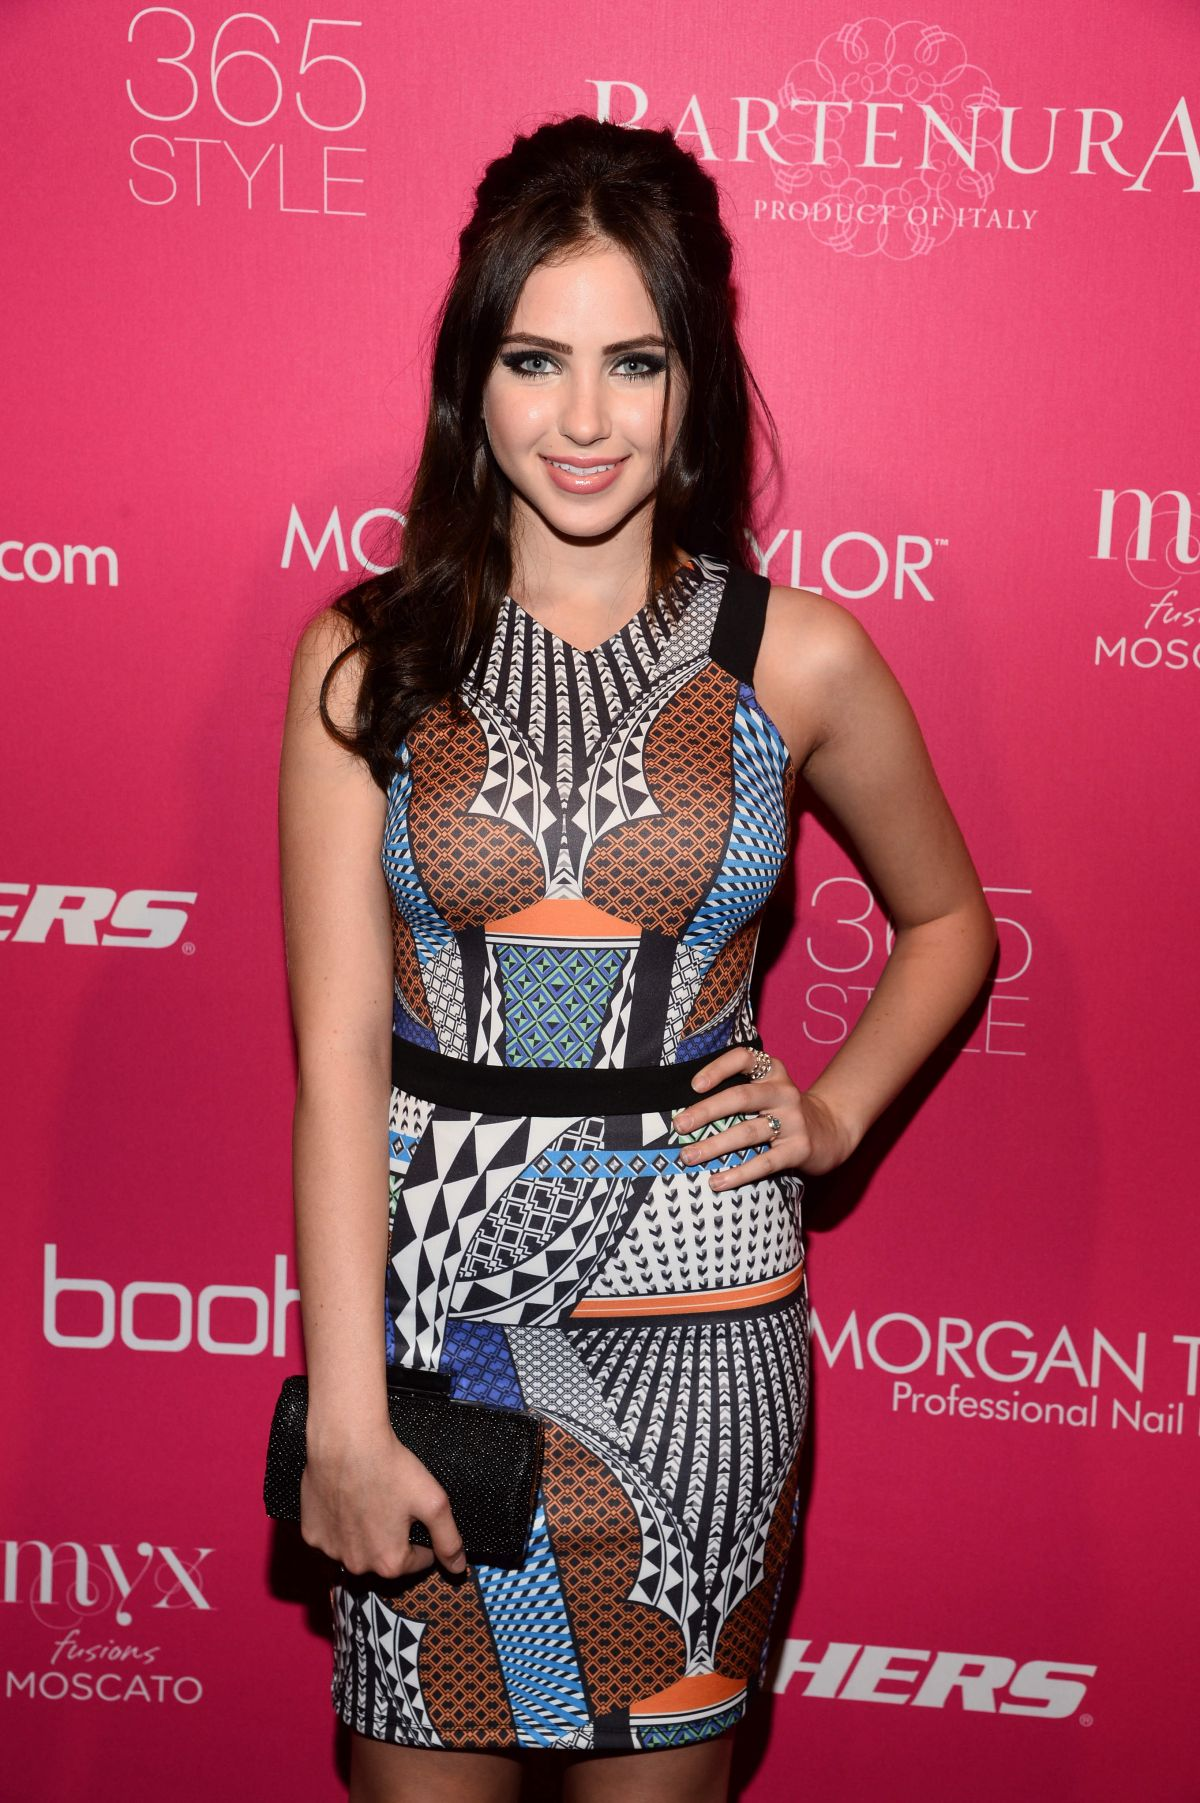 RYAN NEWMAN at OK! Fashion Week Party in New York